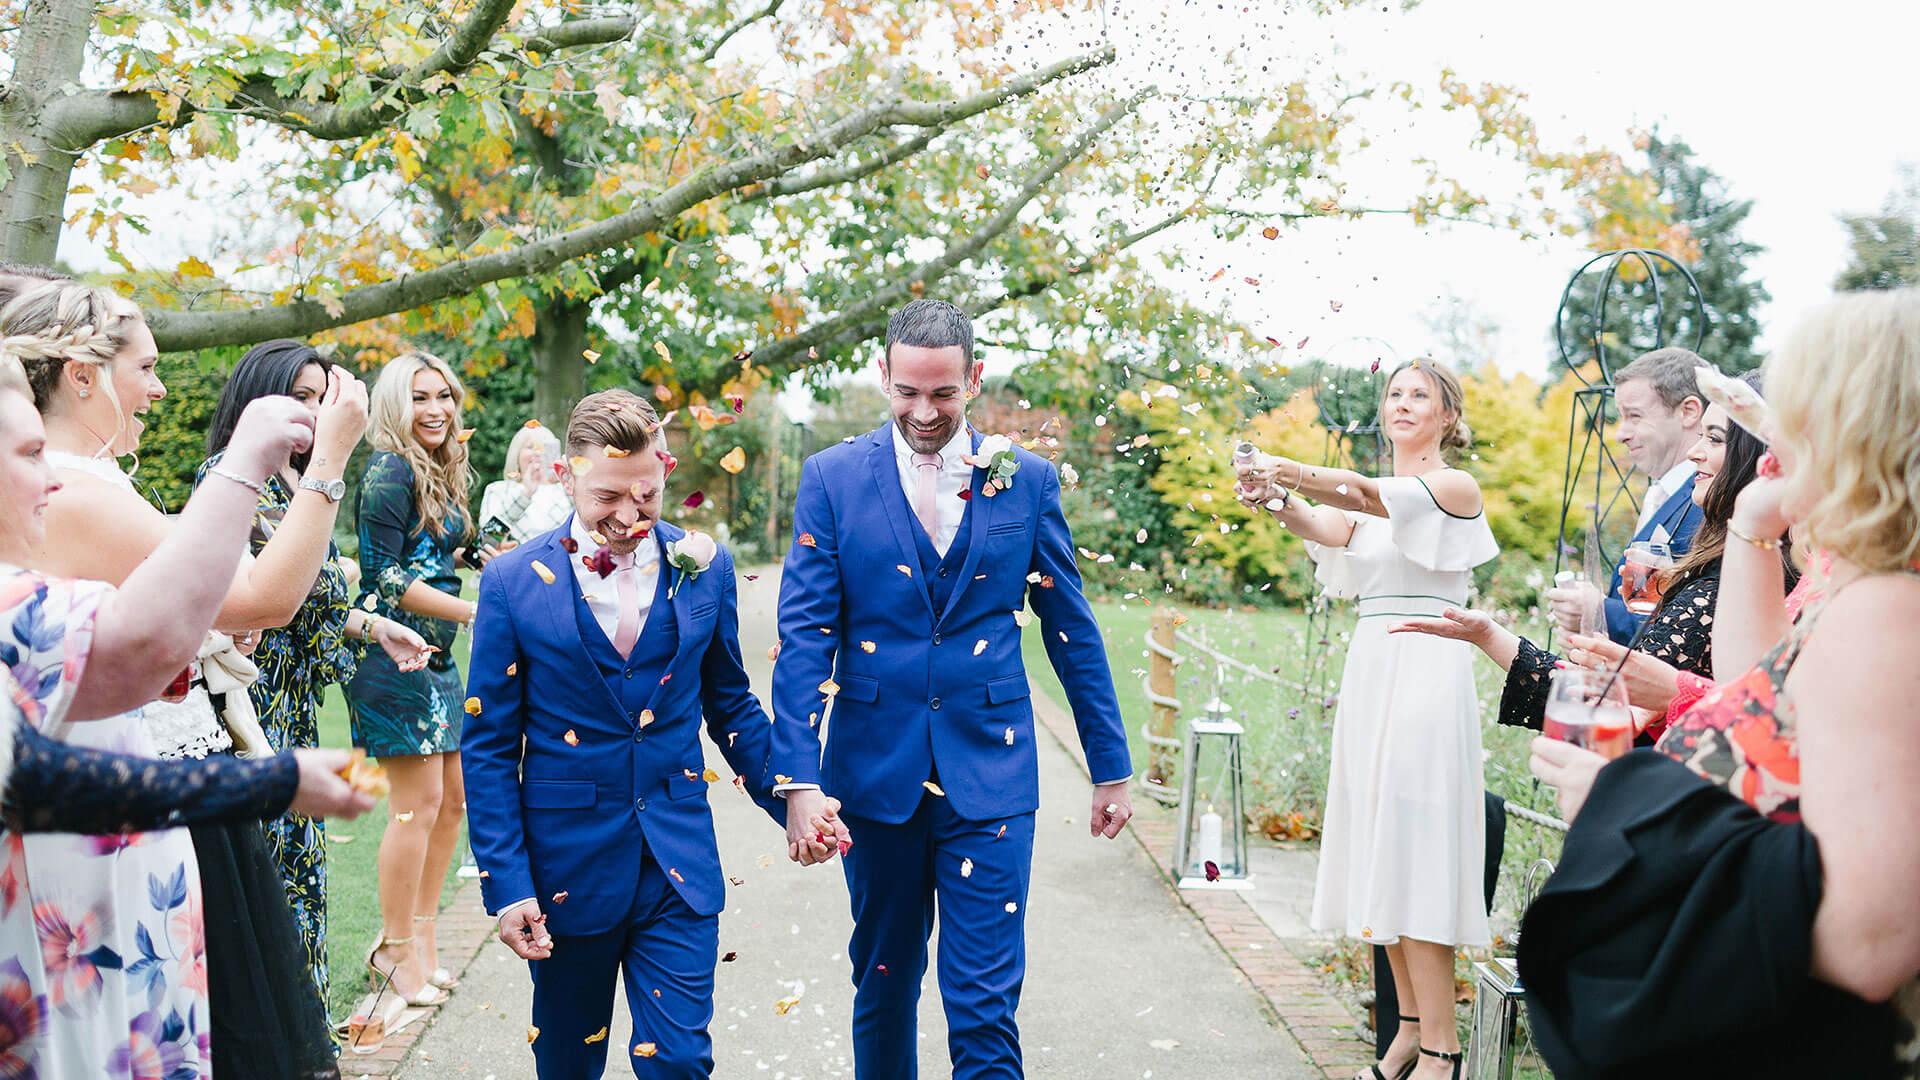 A happy couple are celebrated walking down the long walk - gay wedding